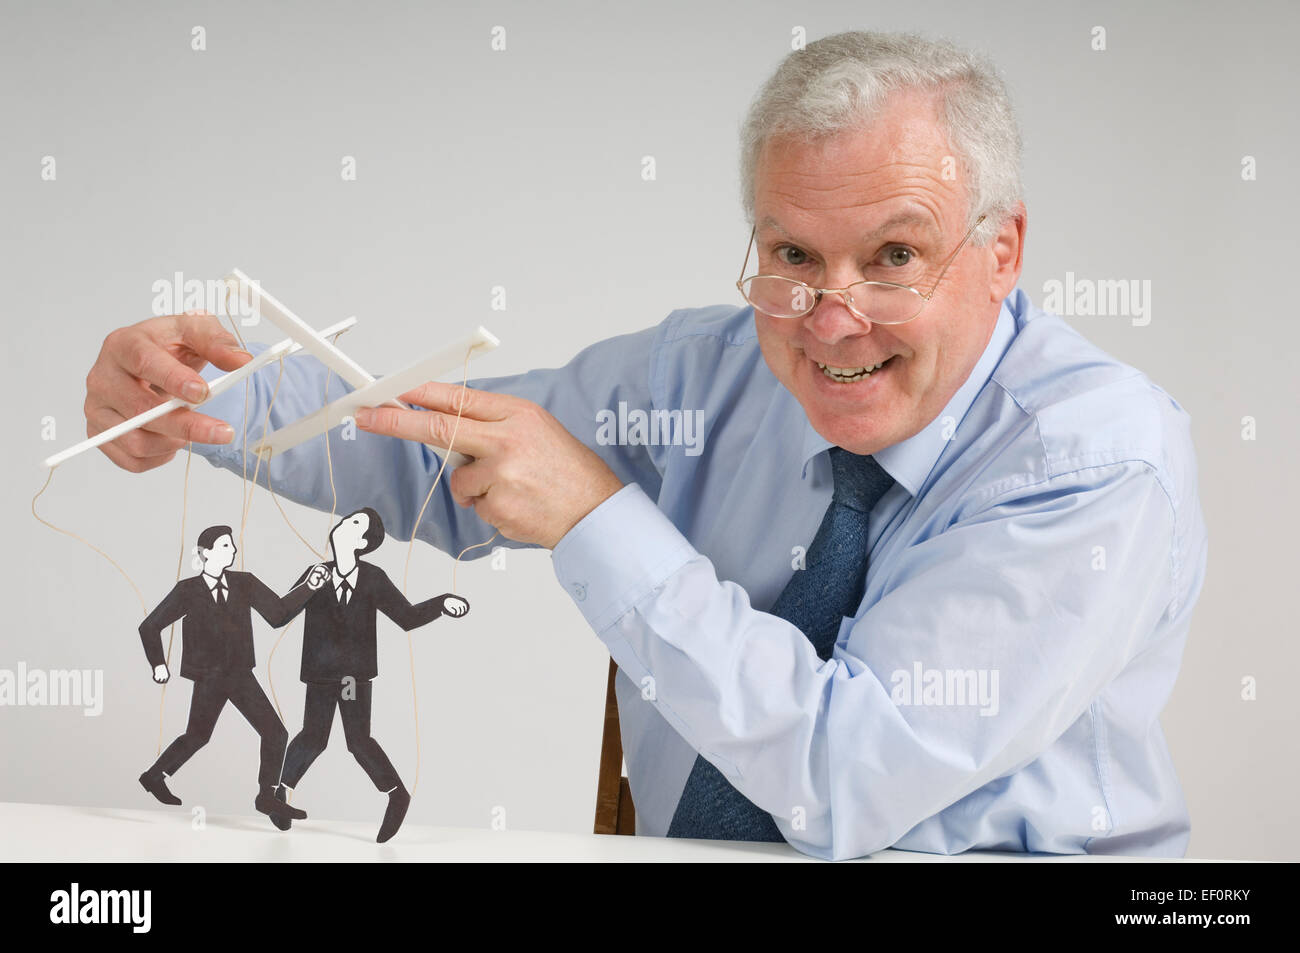 Man playing with puppets - Stock Image